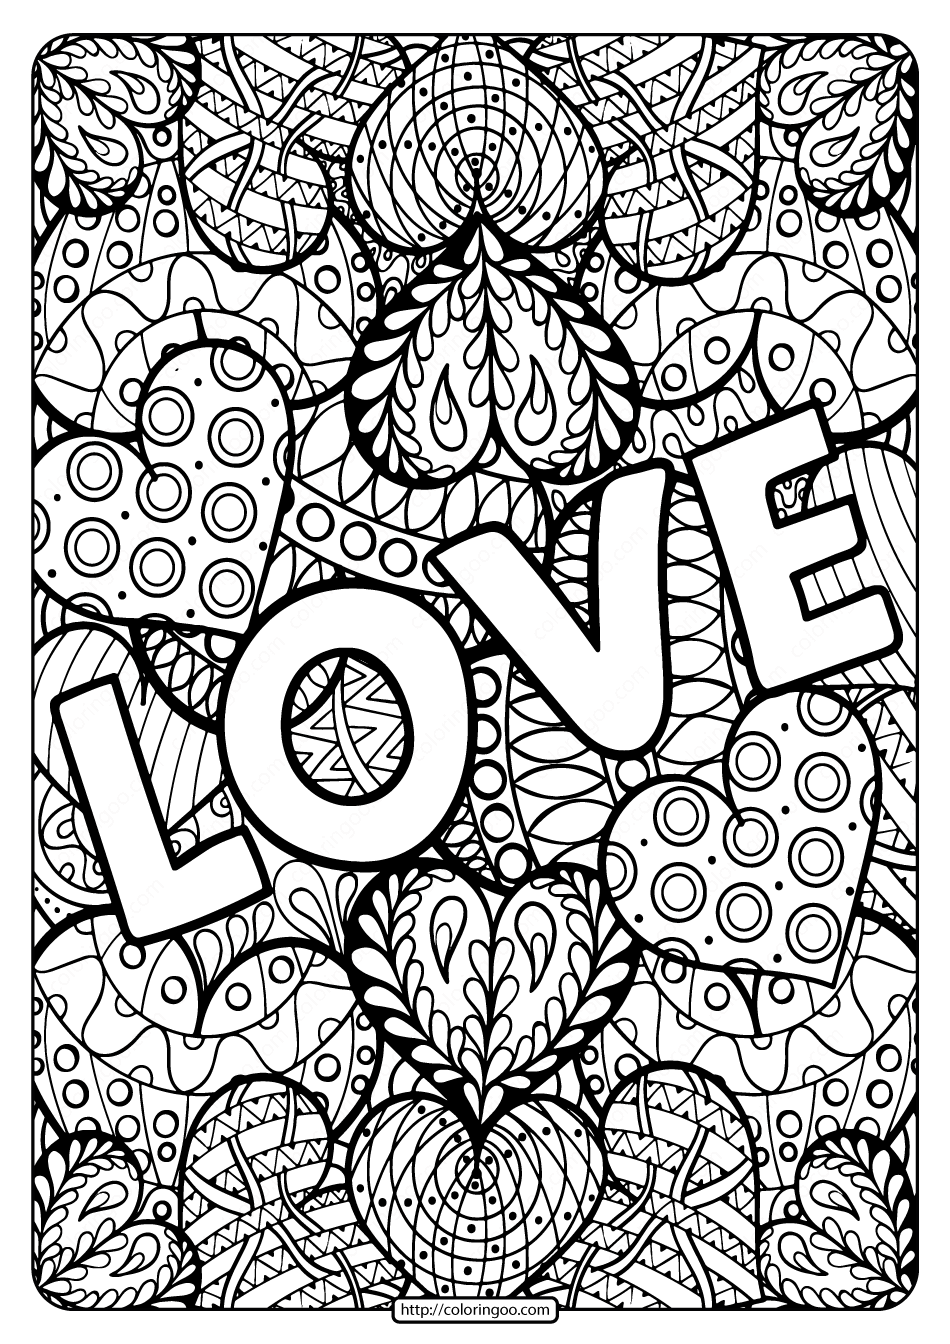 Love pictures to color